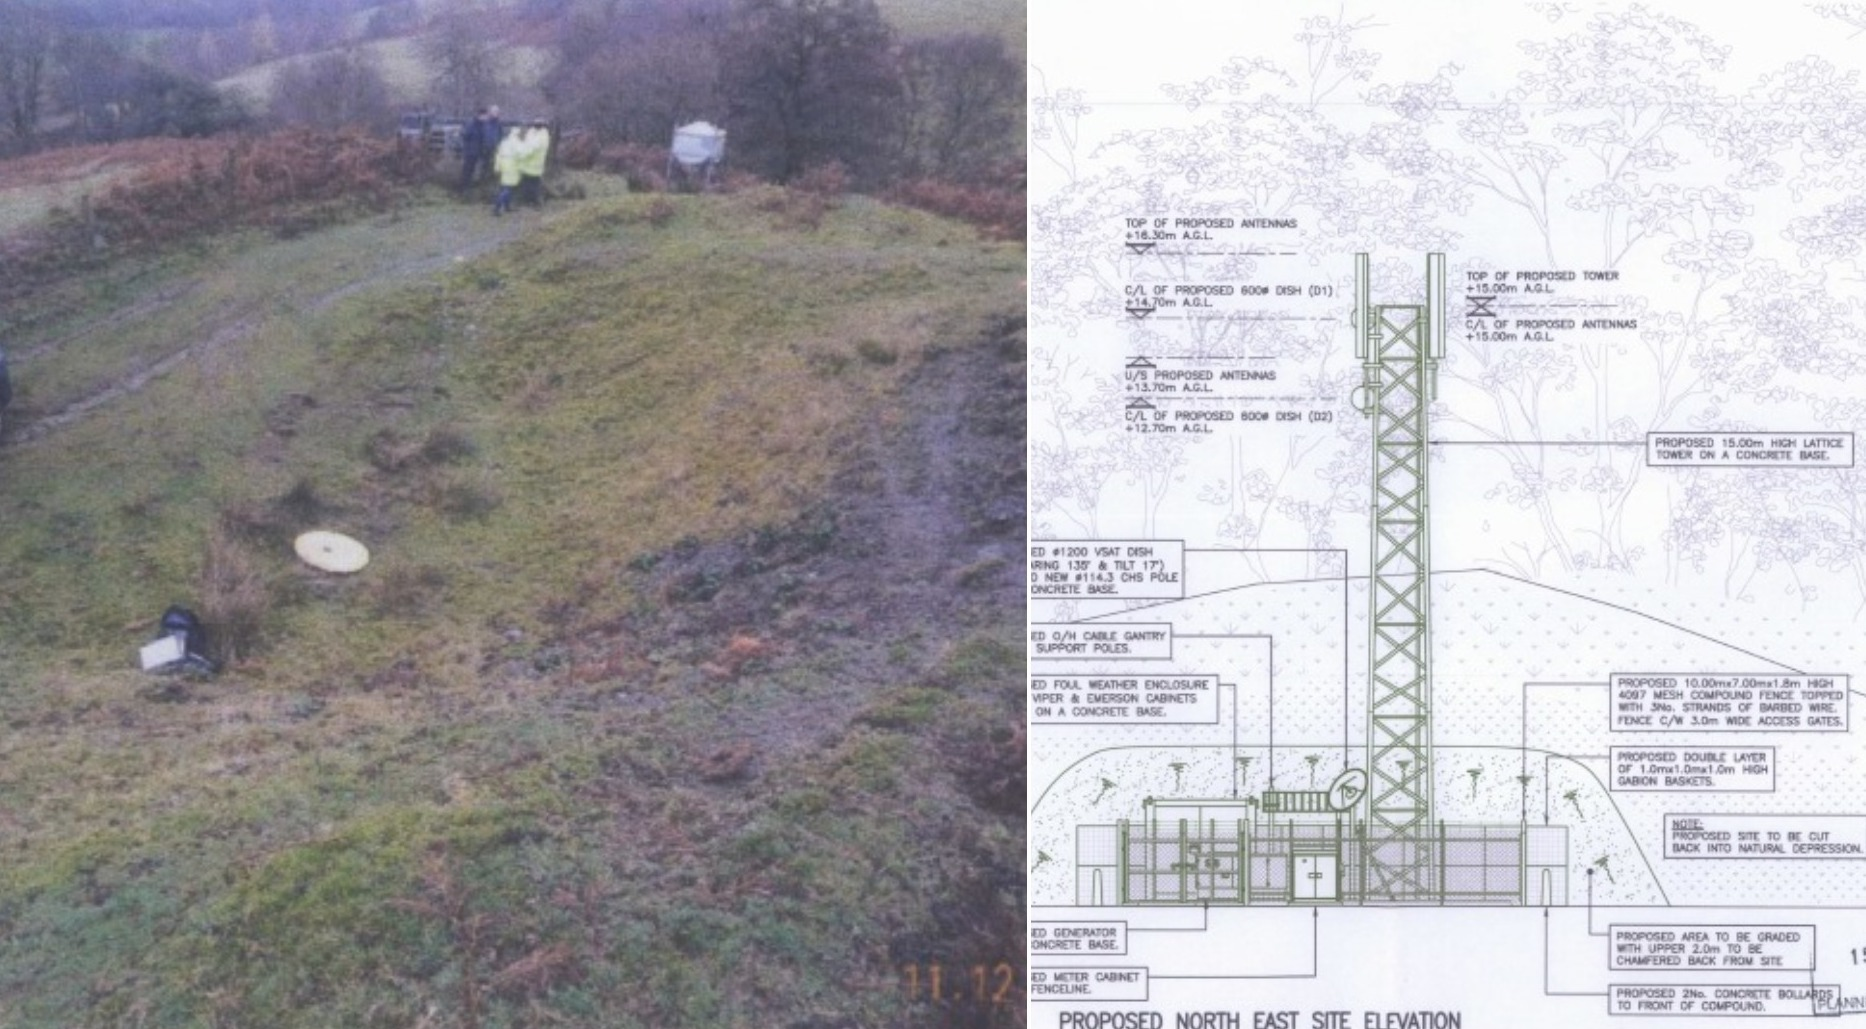 Home Office plans 15-metre-high mast in Ceiriog Valley as part of new emergency services network